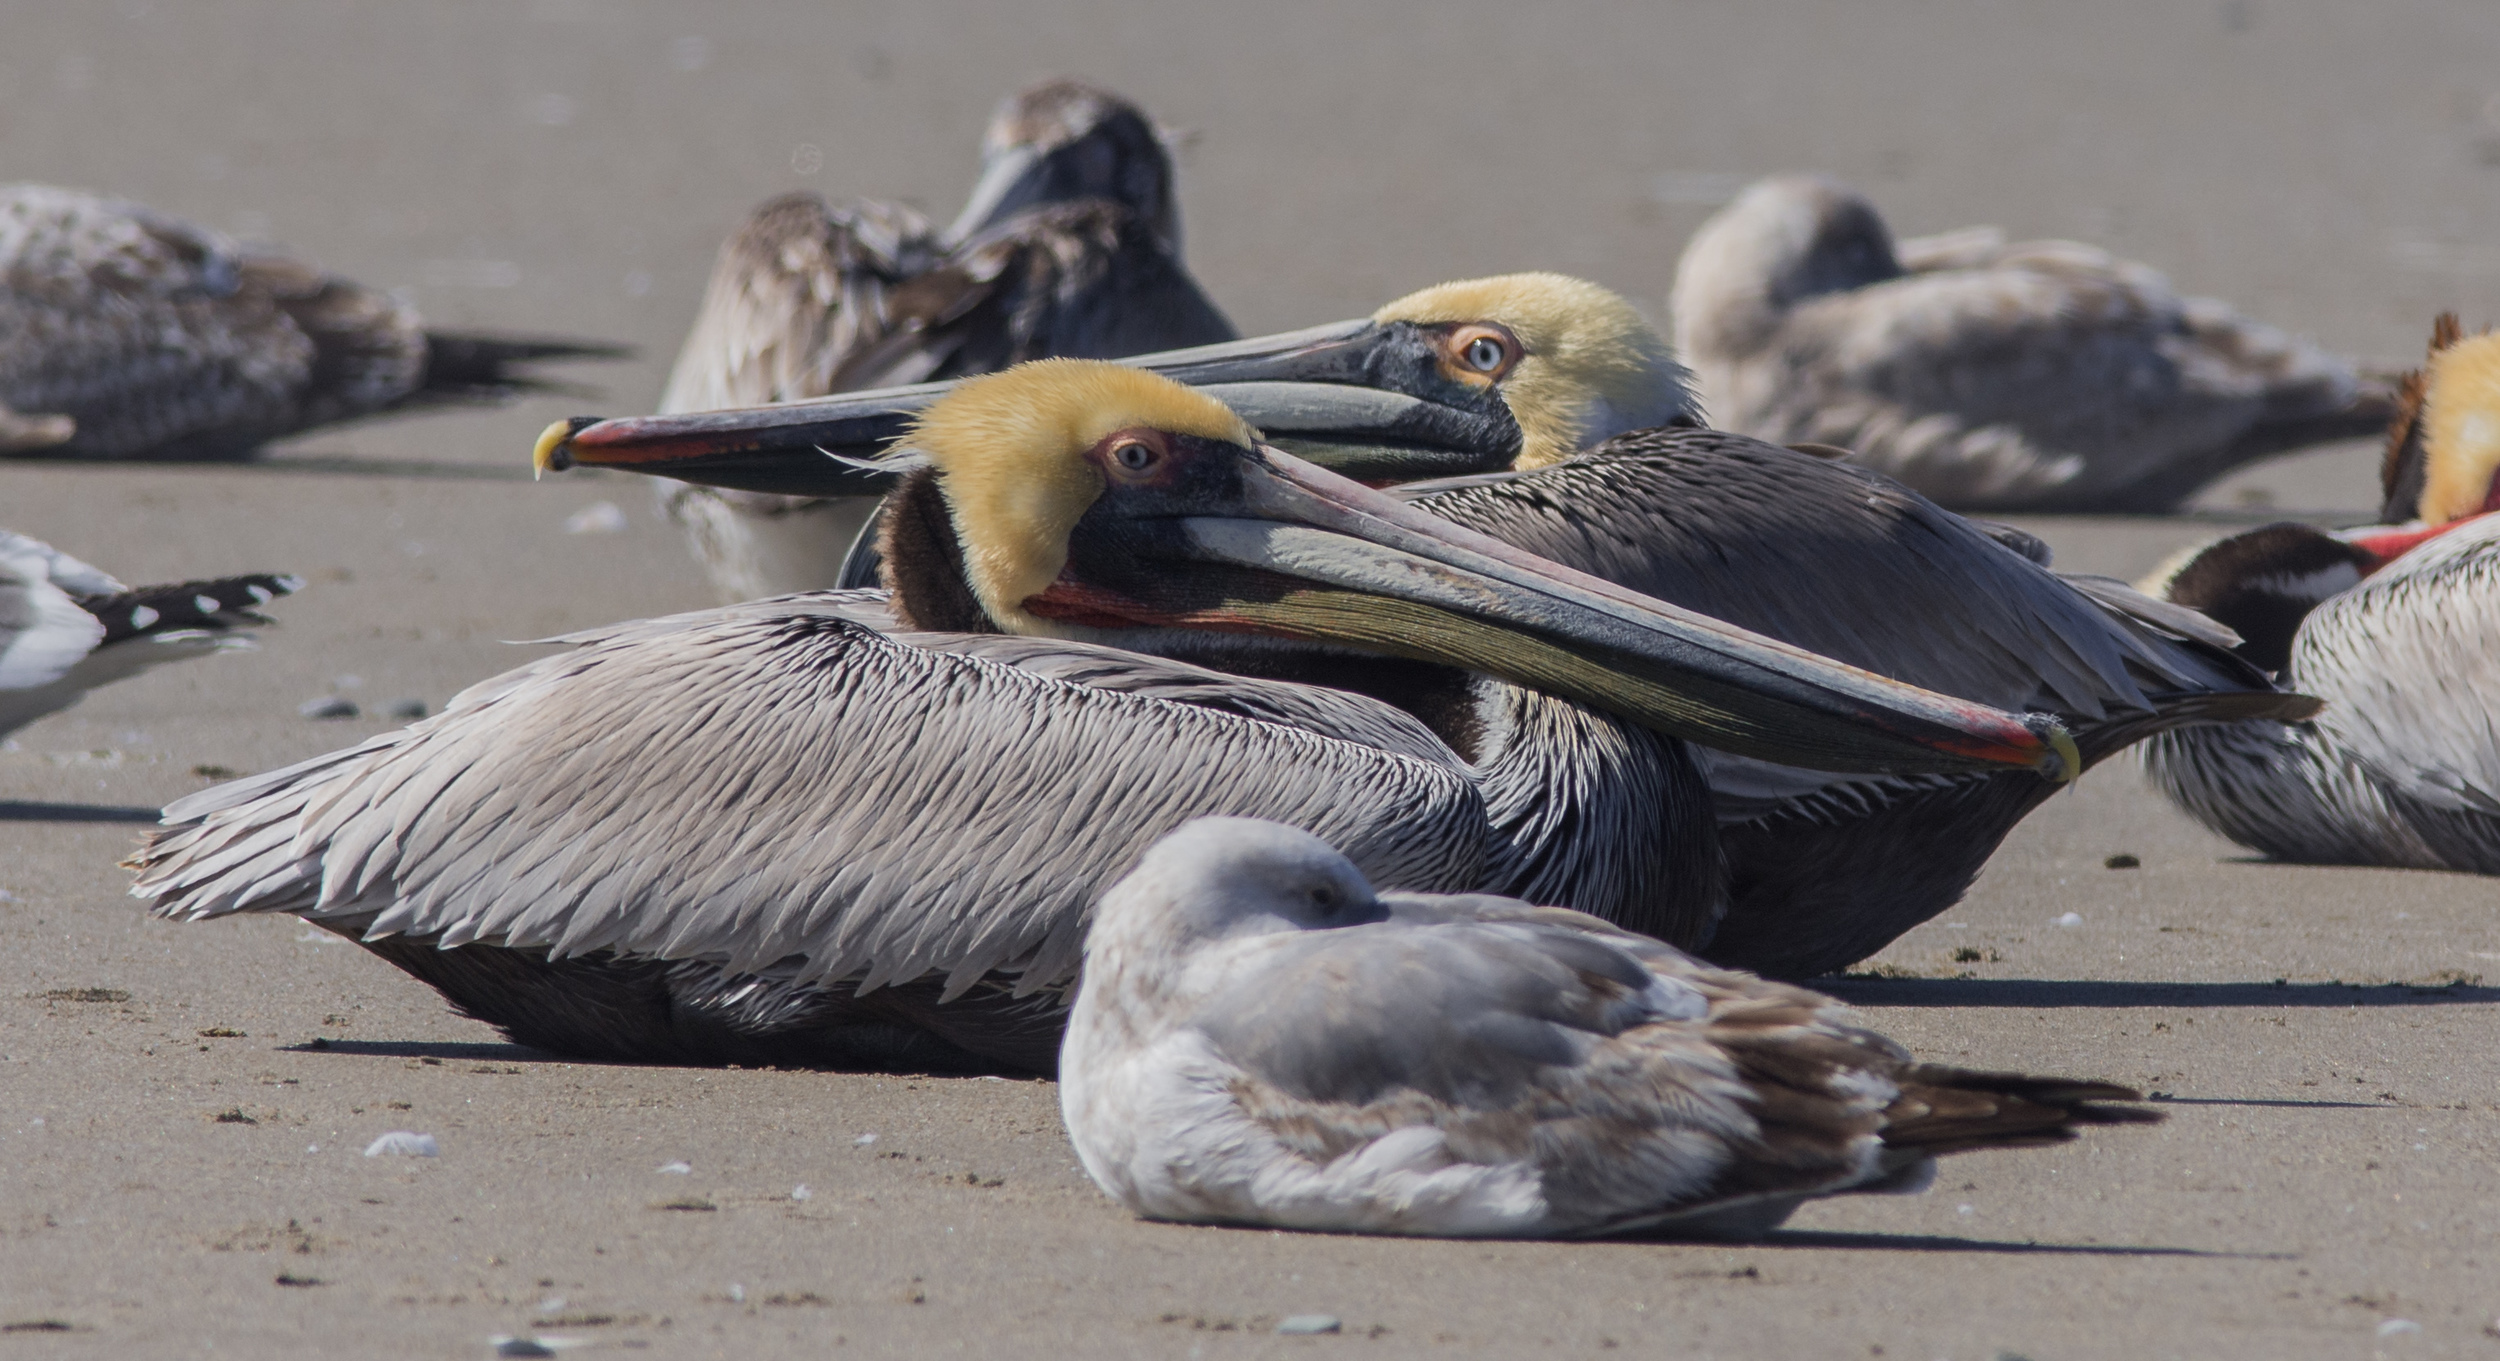 Photo of the Week 32: Brown Pelican (Pelecanus occidentalis) at the Pajaro River Mouth  EQ: D7200, 300mm f/2.8 with 1.4 TC  Taken: 3-2-2016 at 12:39   Settings: 630mm (35mm eqiv), 1/1000s, f/6.3, ISO250, +1/3EV  Conditions: Sunny